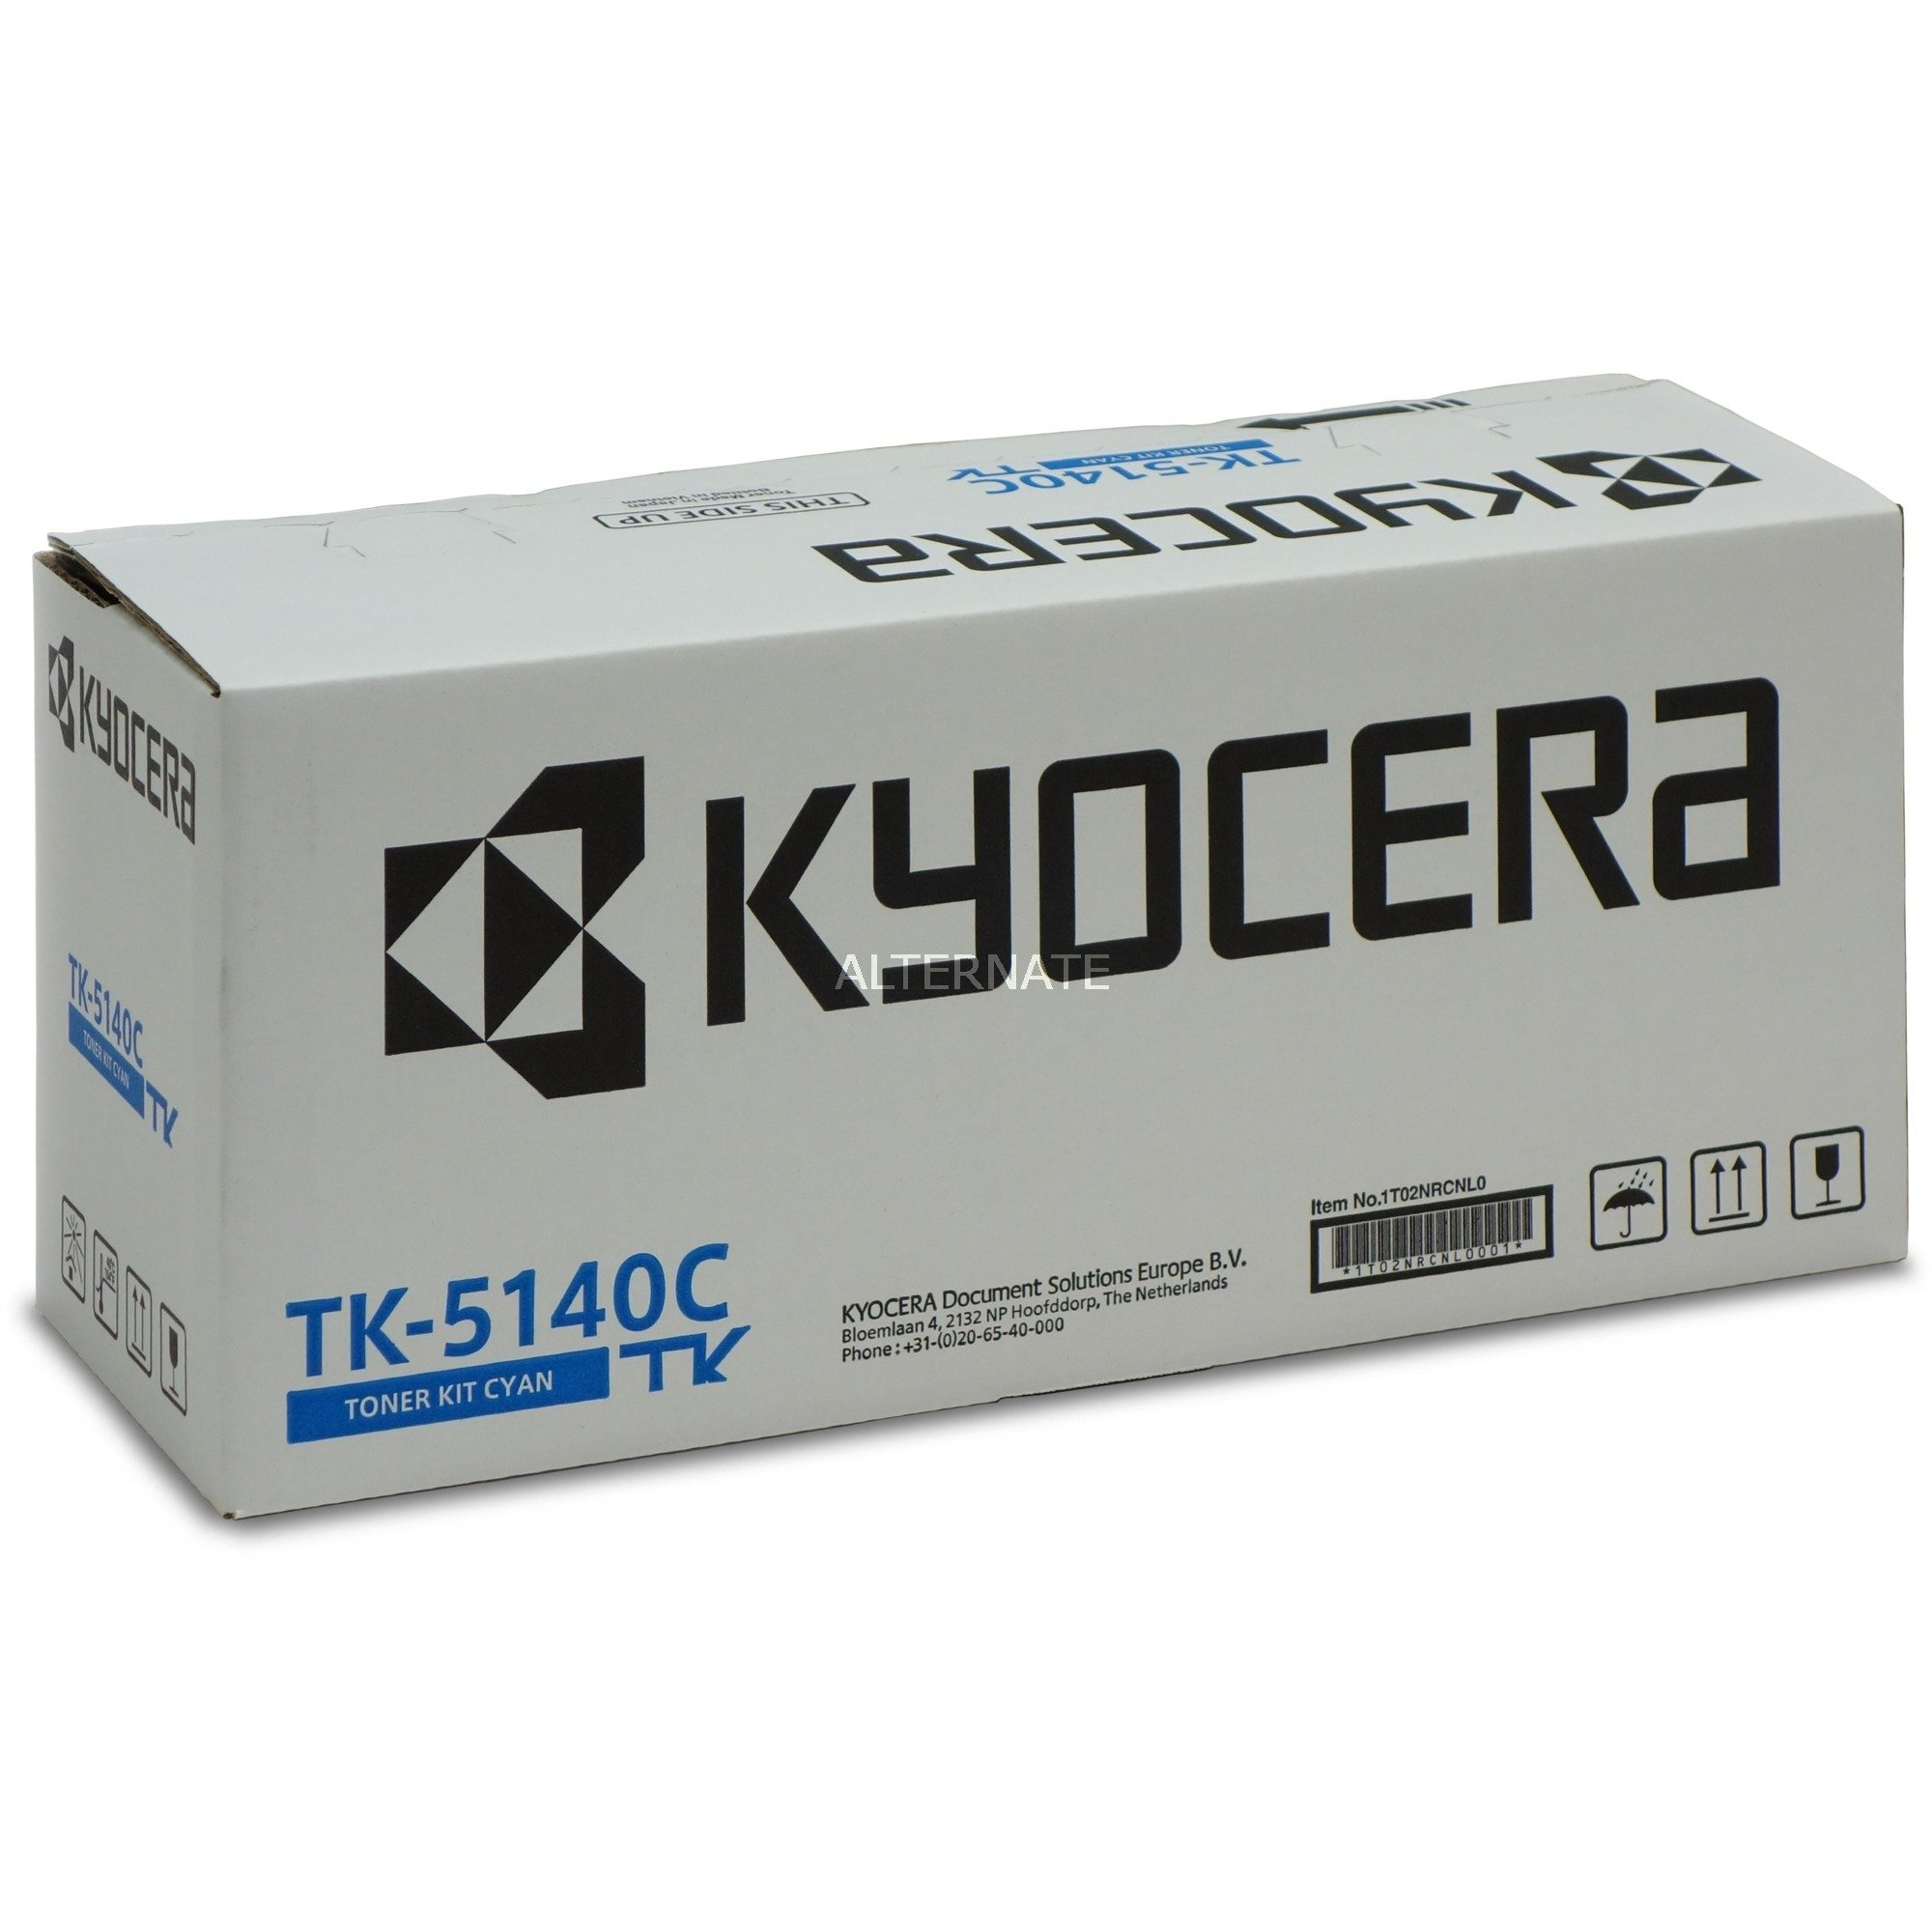 TK-5140C 5000pages Cyan, Toner